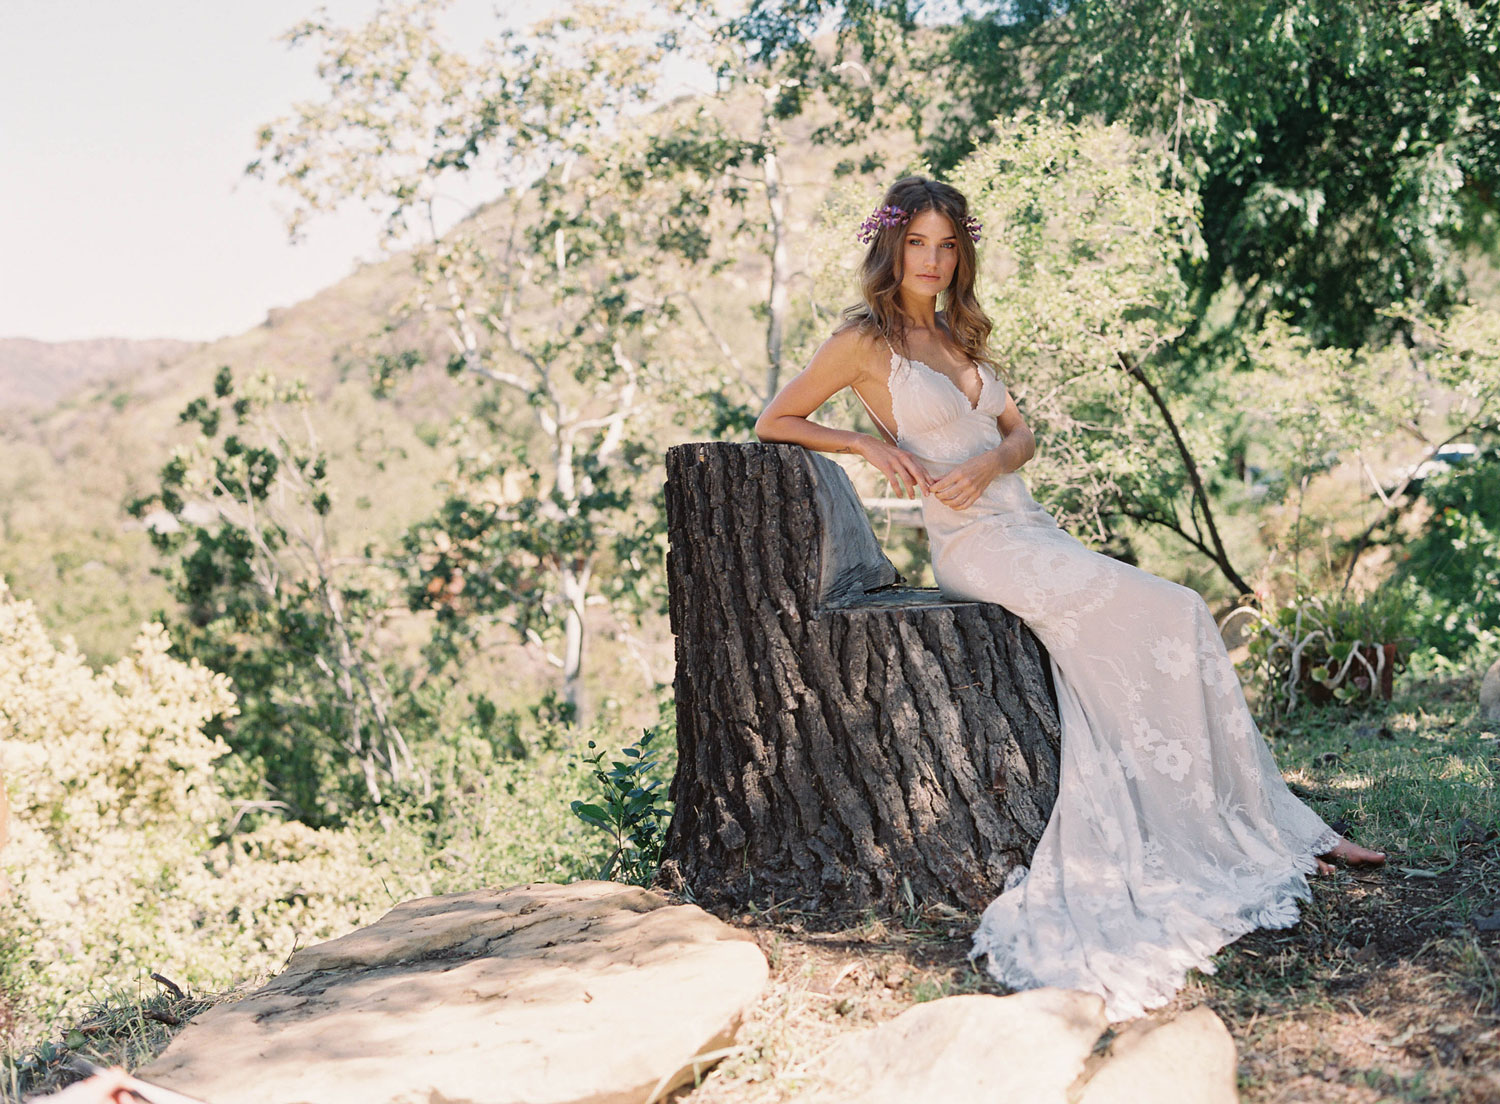 Claire Pettibone Romantique stylized shoot in Malibu California Dreamin' collection Del Rey wedding dress